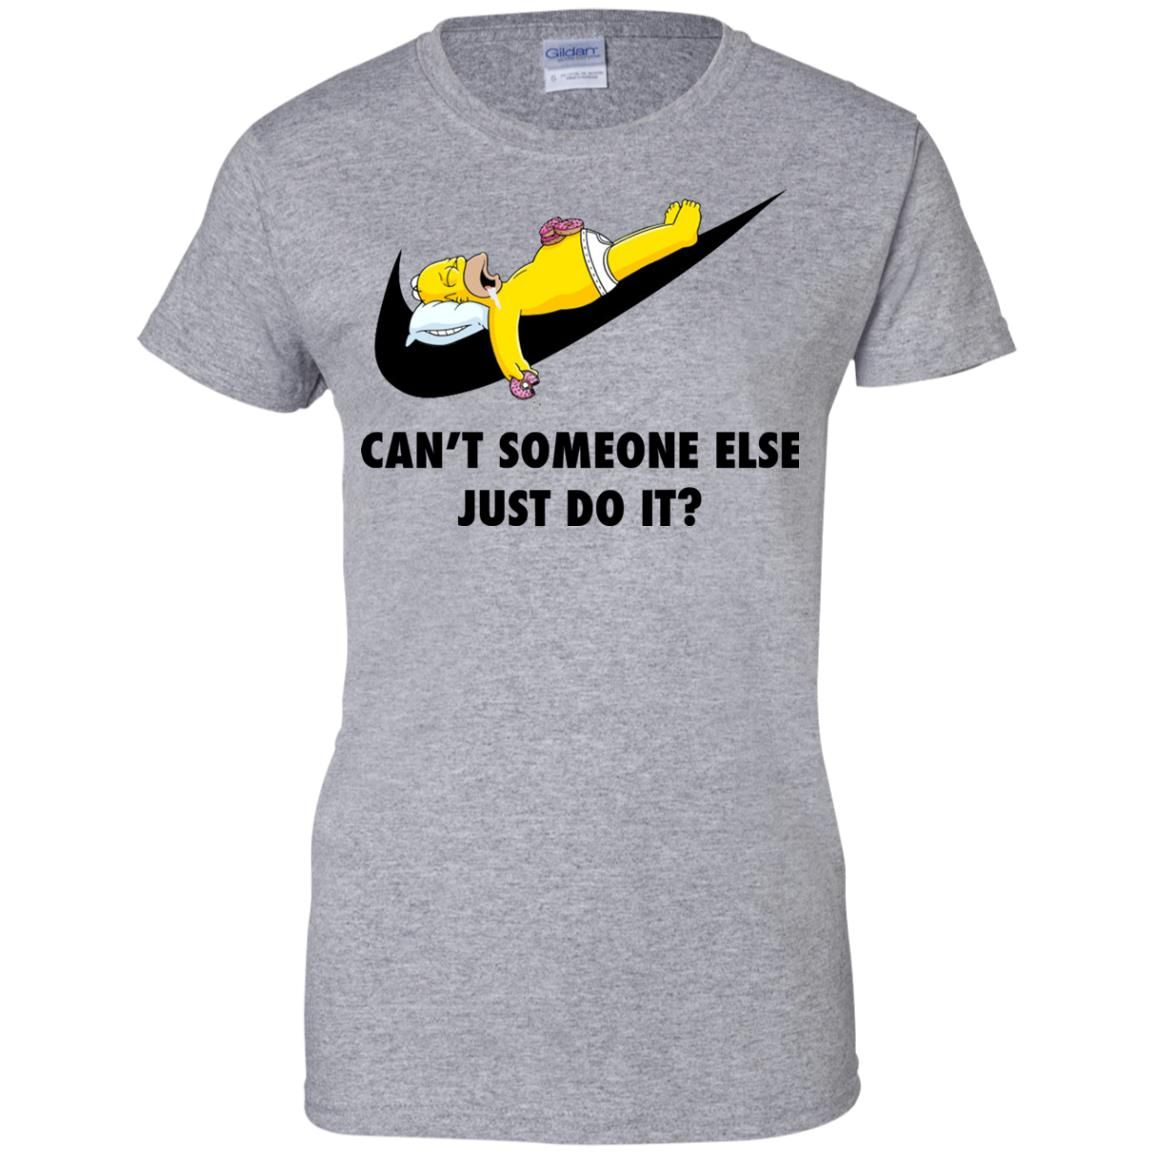 image 1412 - The Simpsons: Can't someone eles just do it shirt, tank, hoodie